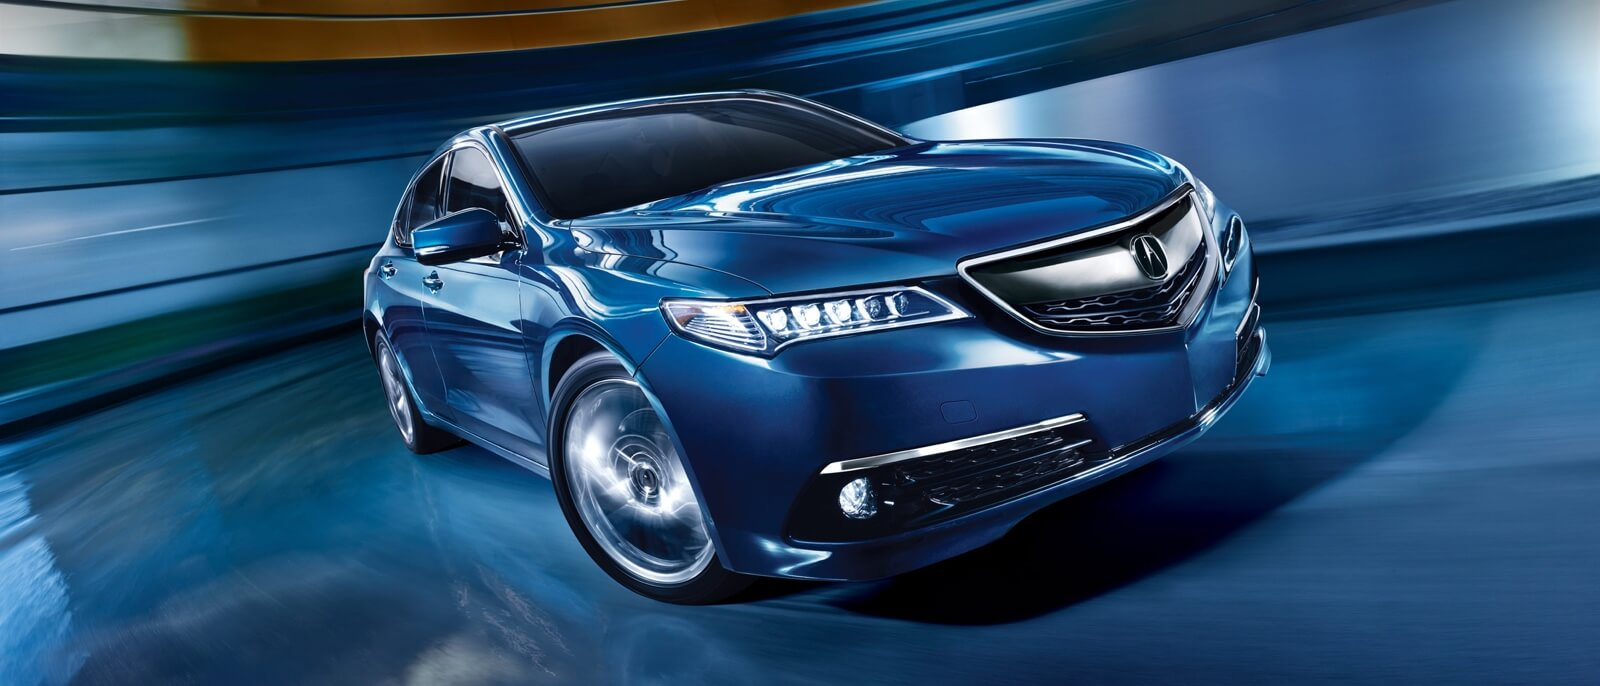 2016 Acura TLX blue exterior